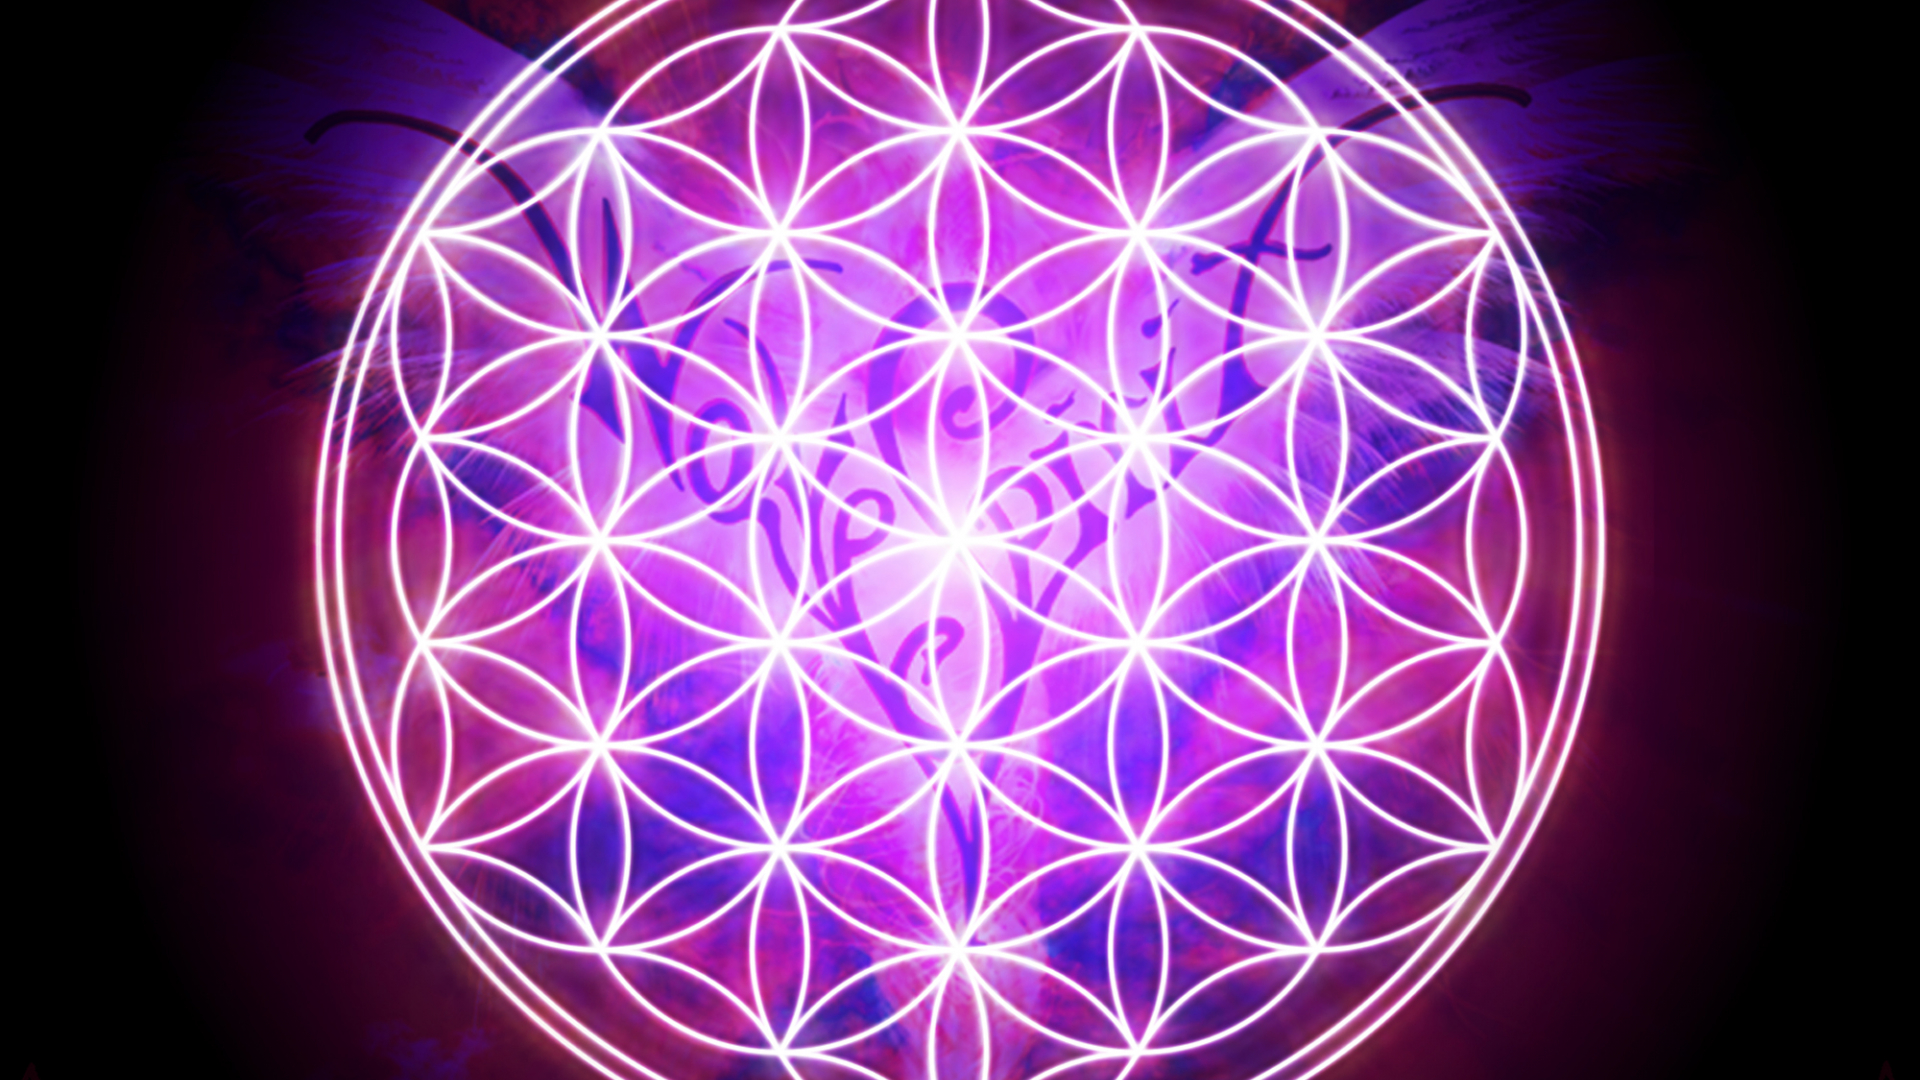 Free Download Flower Of Life Wallpaper Flower Of Life Iphone